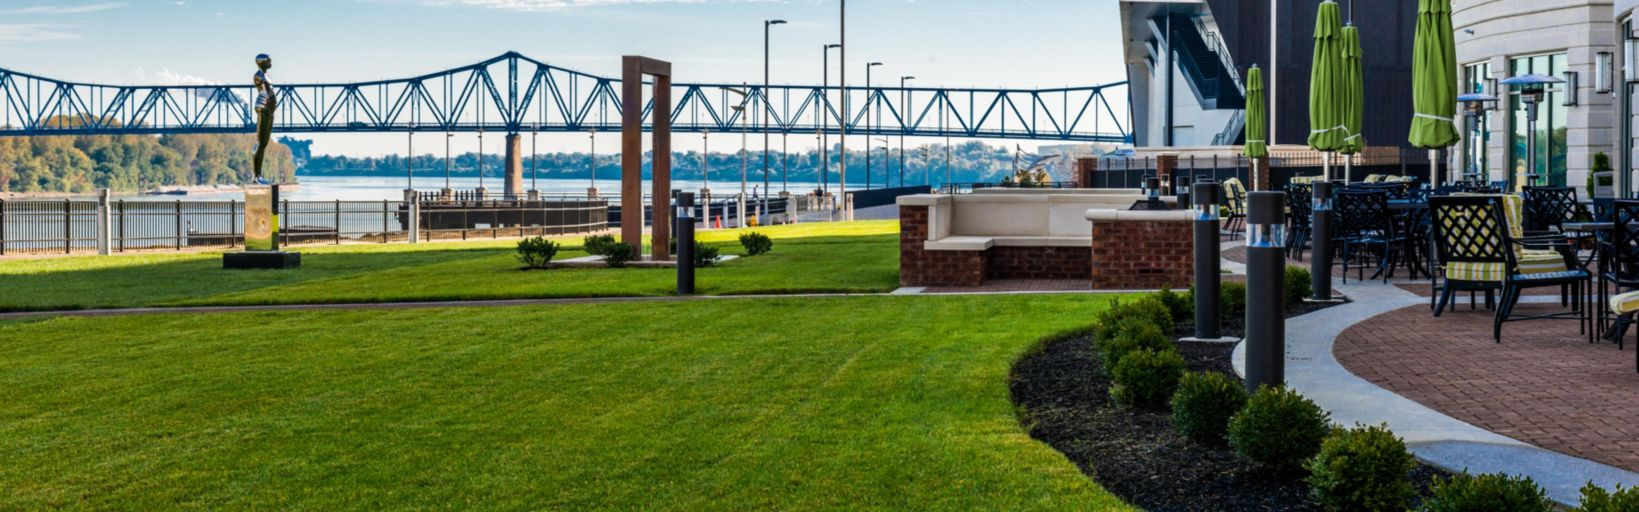 Holiday Inn Everydayisaholiday Plan Your Convention In Owensboro For A First Cl Experience